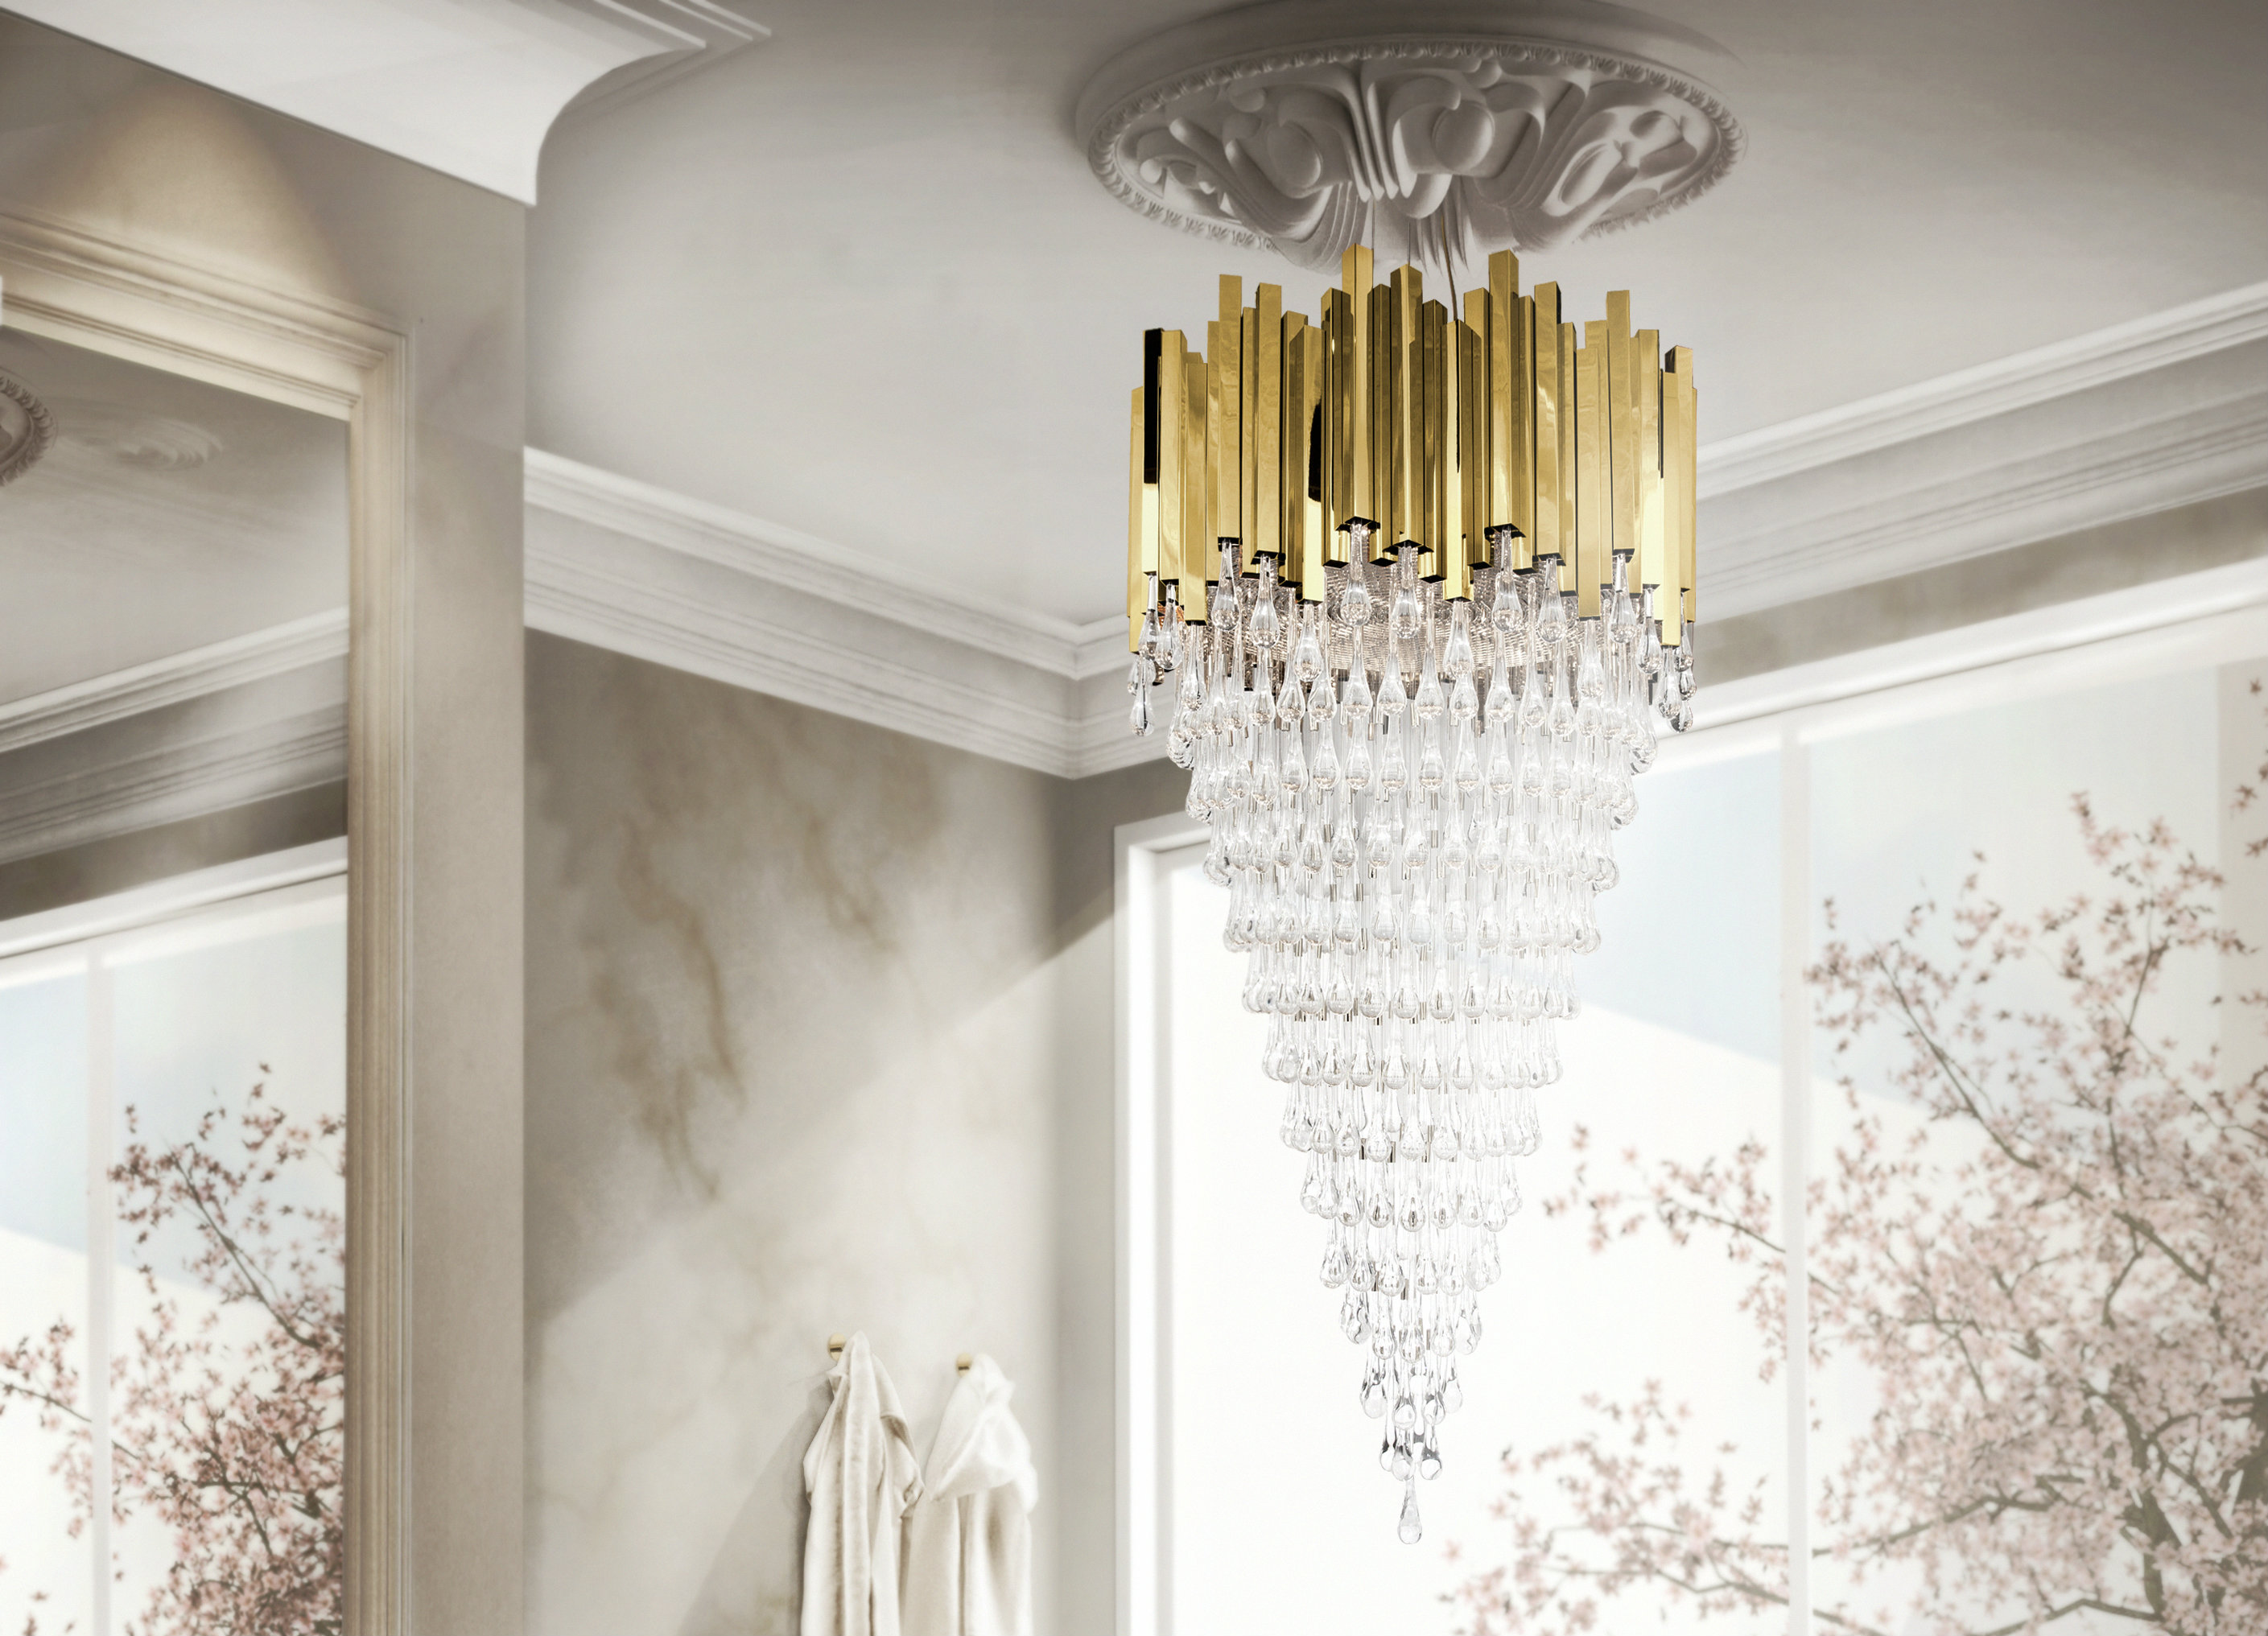 5 Gold chandeliers with crystals to light up your world kourtney kardashian Celebrity Home: Peek Inside Kourtney Kardashian Living Room trump chandeleir 2 kourtney kardashian Celebrity Home: Peek Inside Kourtney Kardashian Living Room trump chandeleir 2